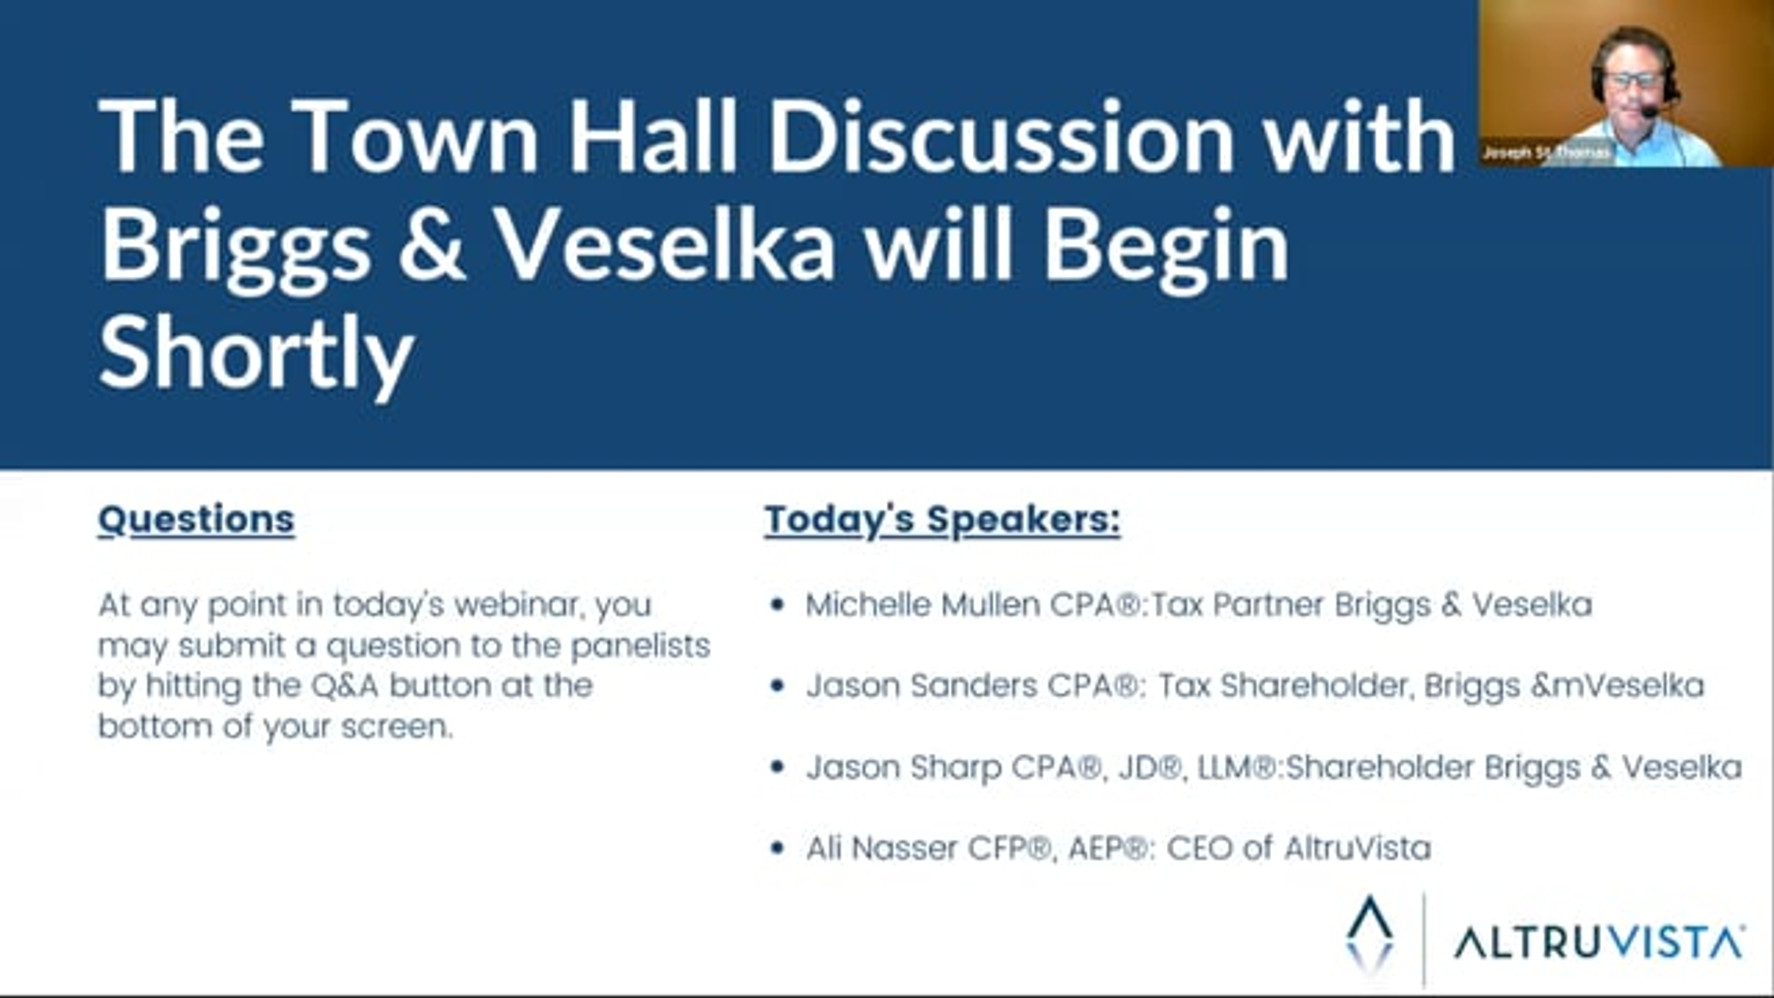 Key Business & Tax Considerations with Briggs and Veselka